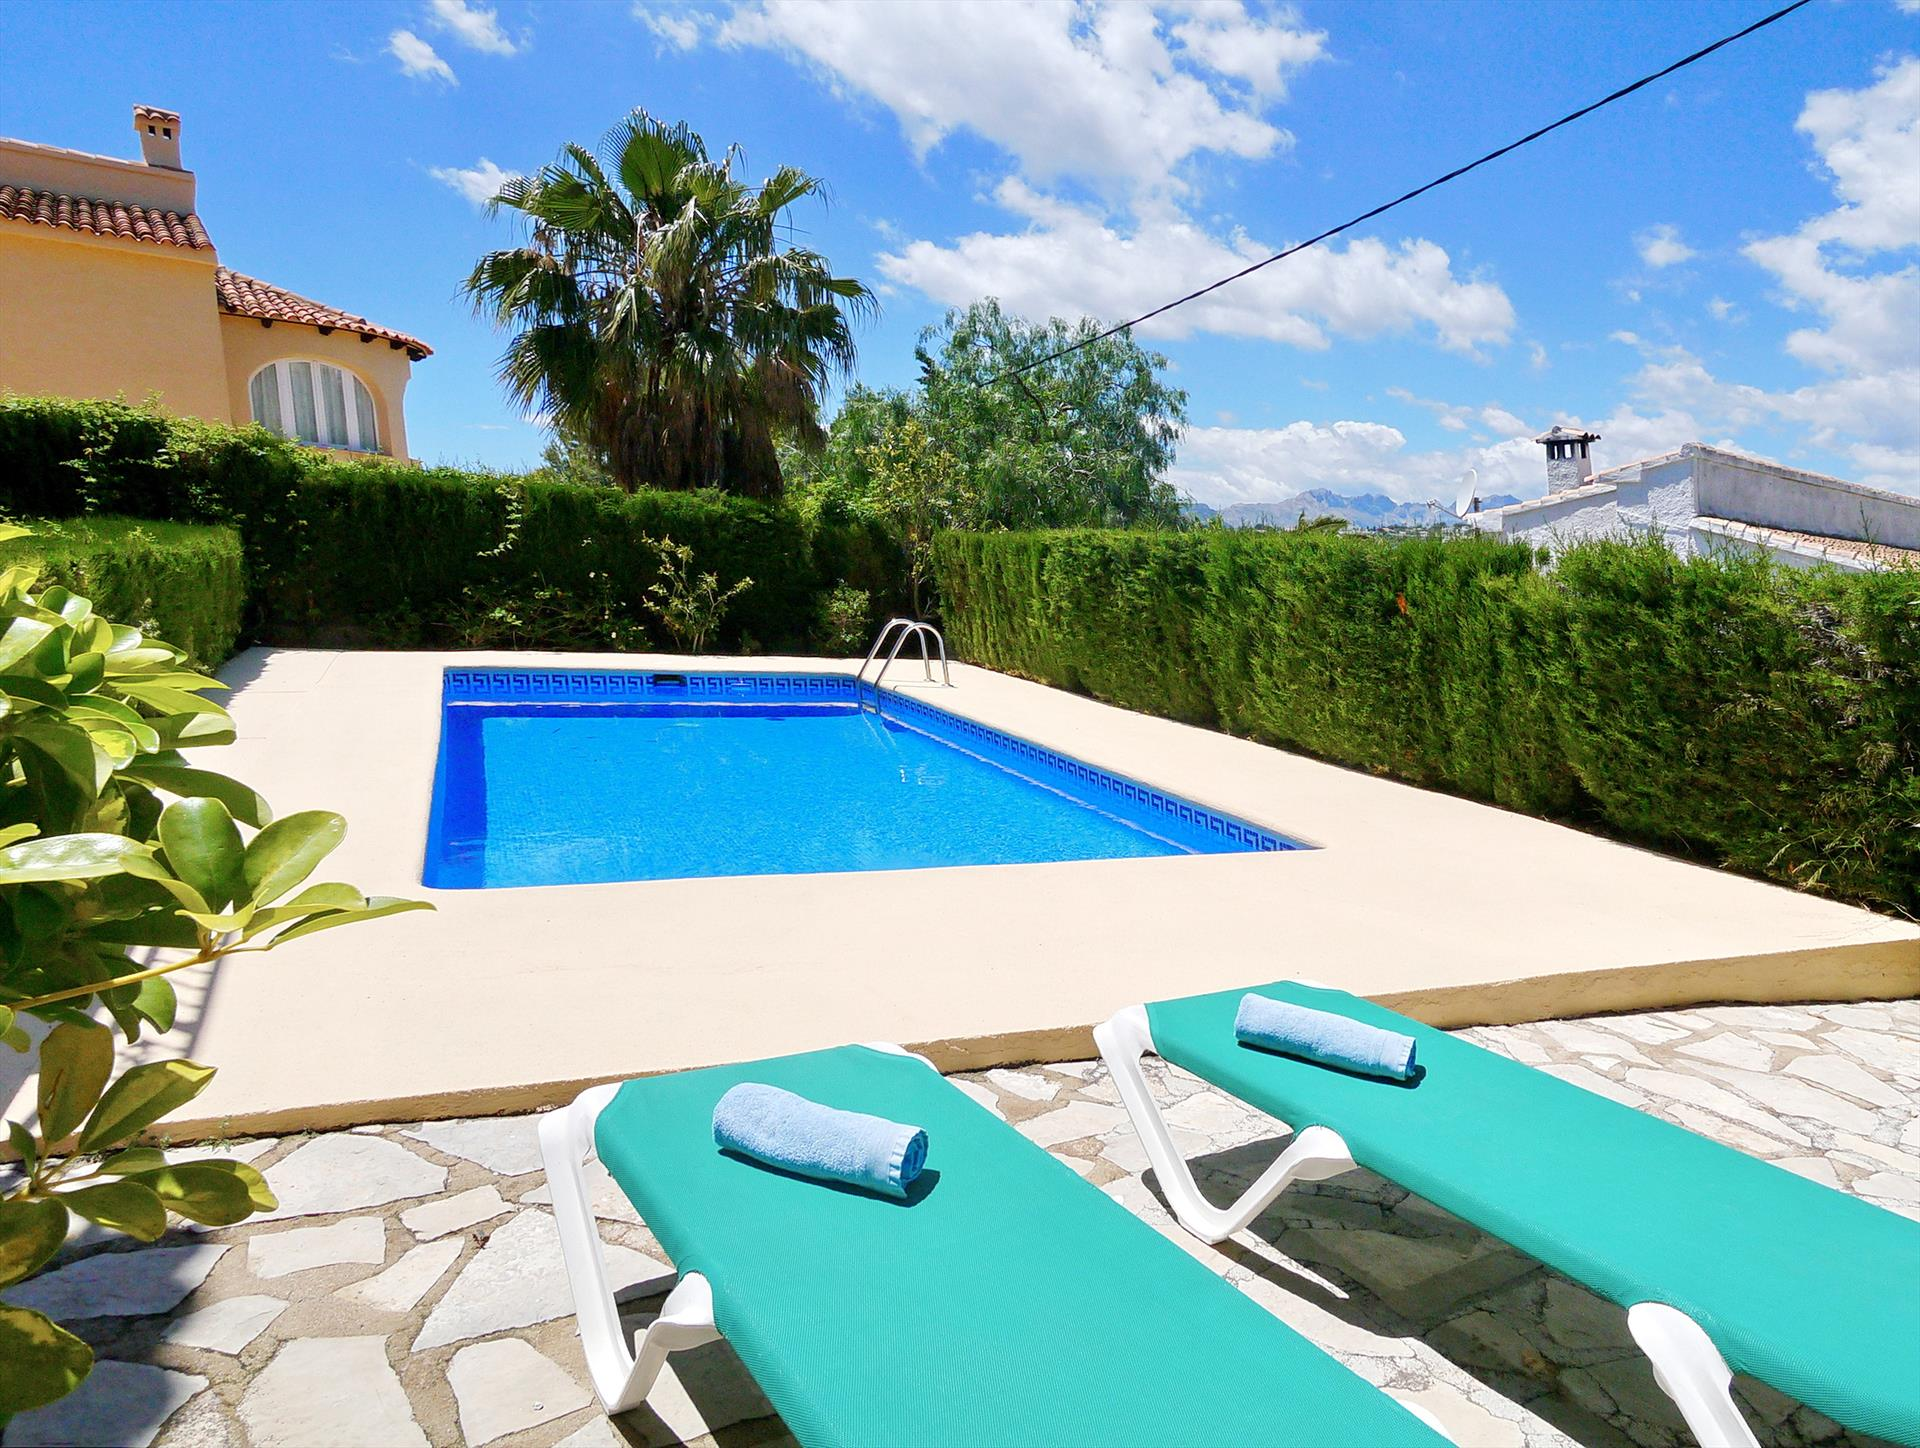 Ferienhaus Mit Pool In Xabia With Private Pool In Javea Xabia Denia Moraira Costa Blanca